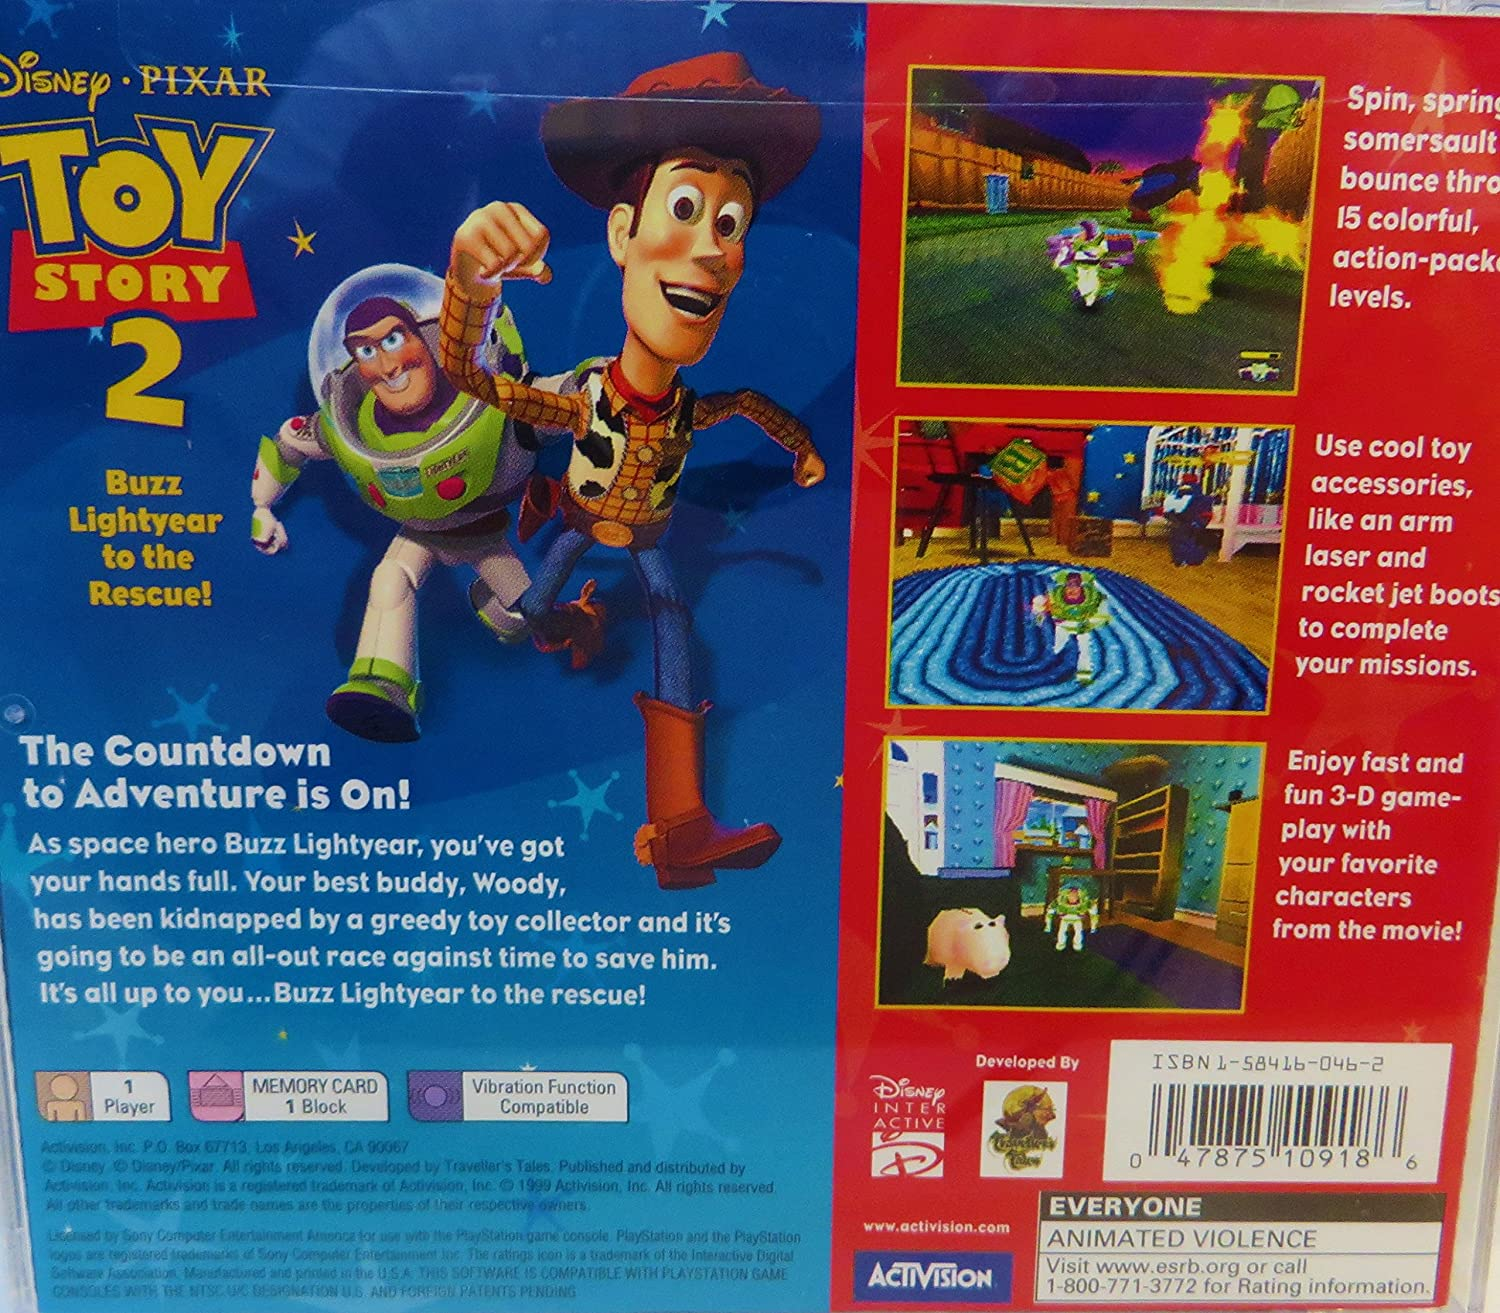 Toy story 2 ps1 game real money slot machine app for ipad